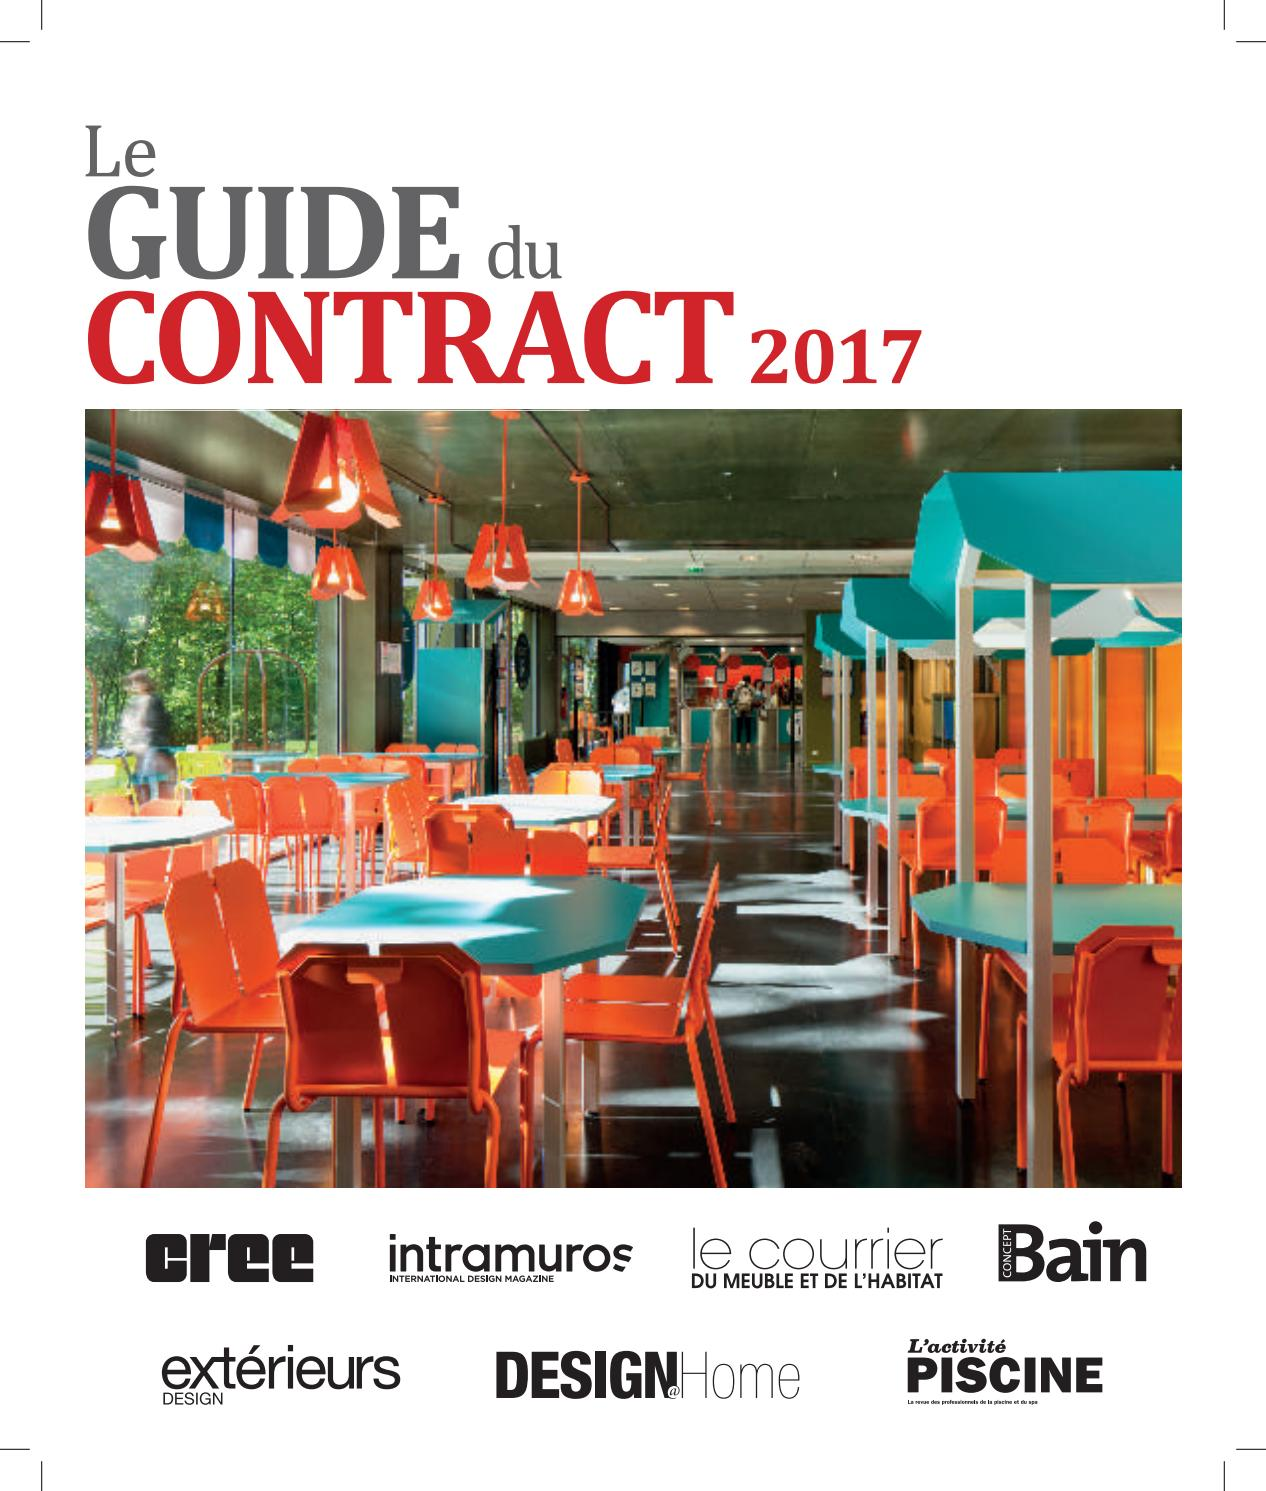 439dcf6efe0f1 Guide du contract 2016-17 by Beemedias - issuu